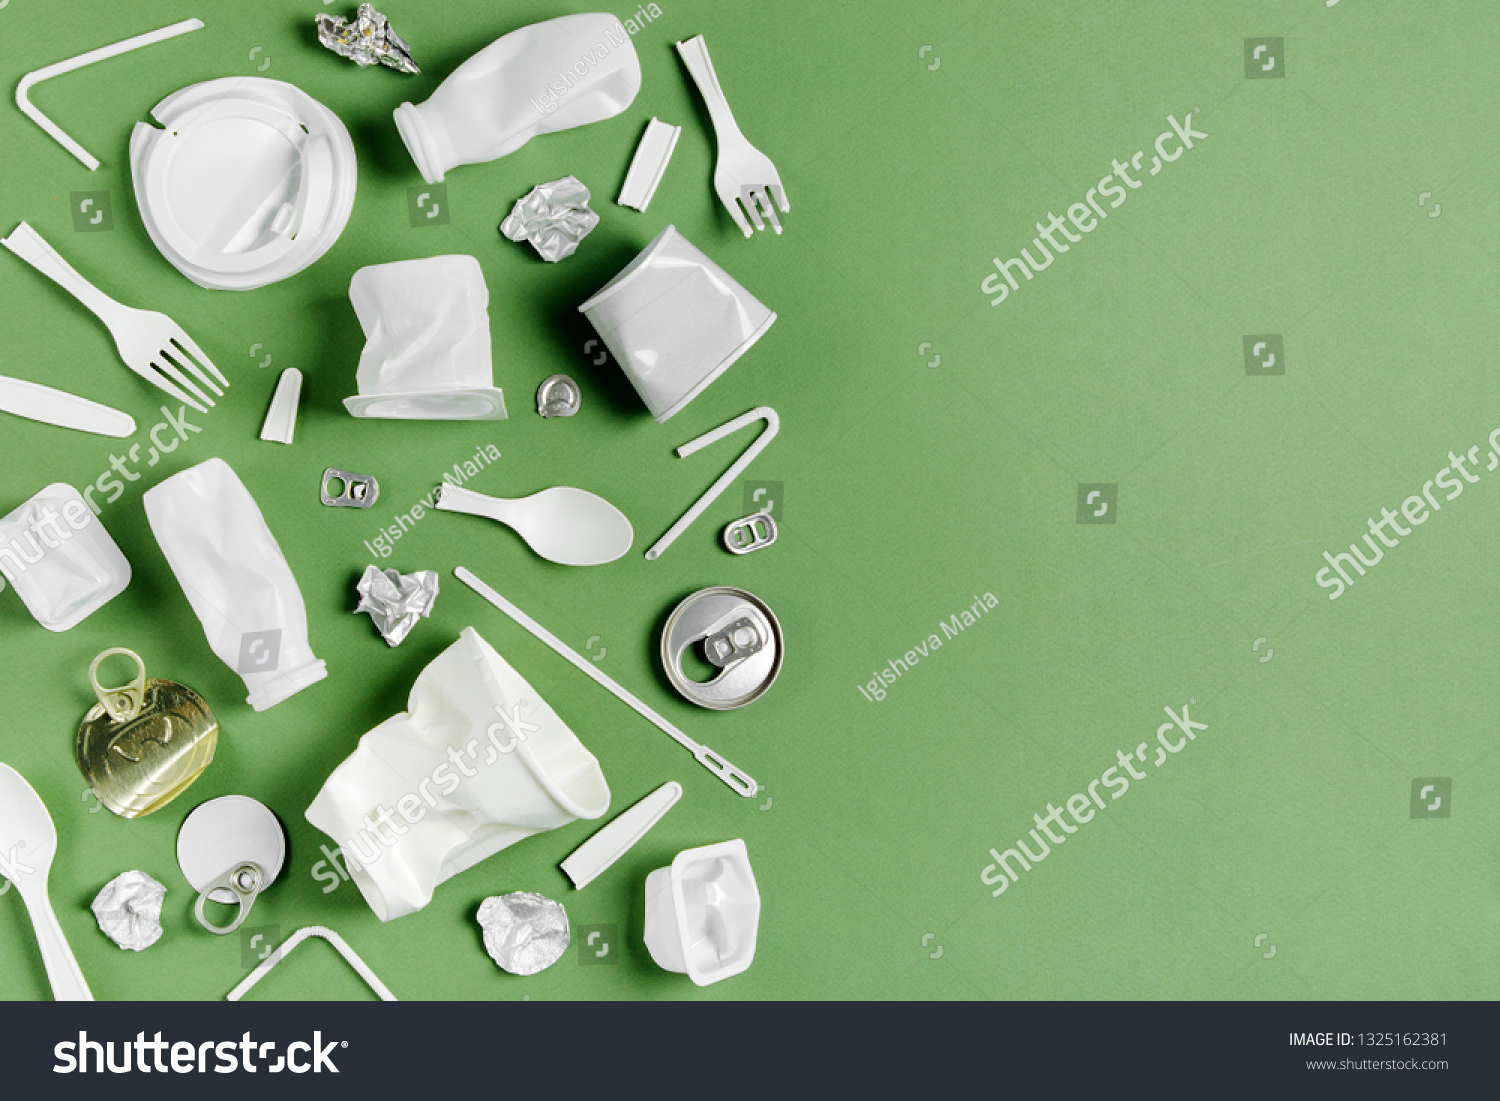 Plastic waste collection on  green background. Concept of Recycling plastic and ecology. Flat lay, top view